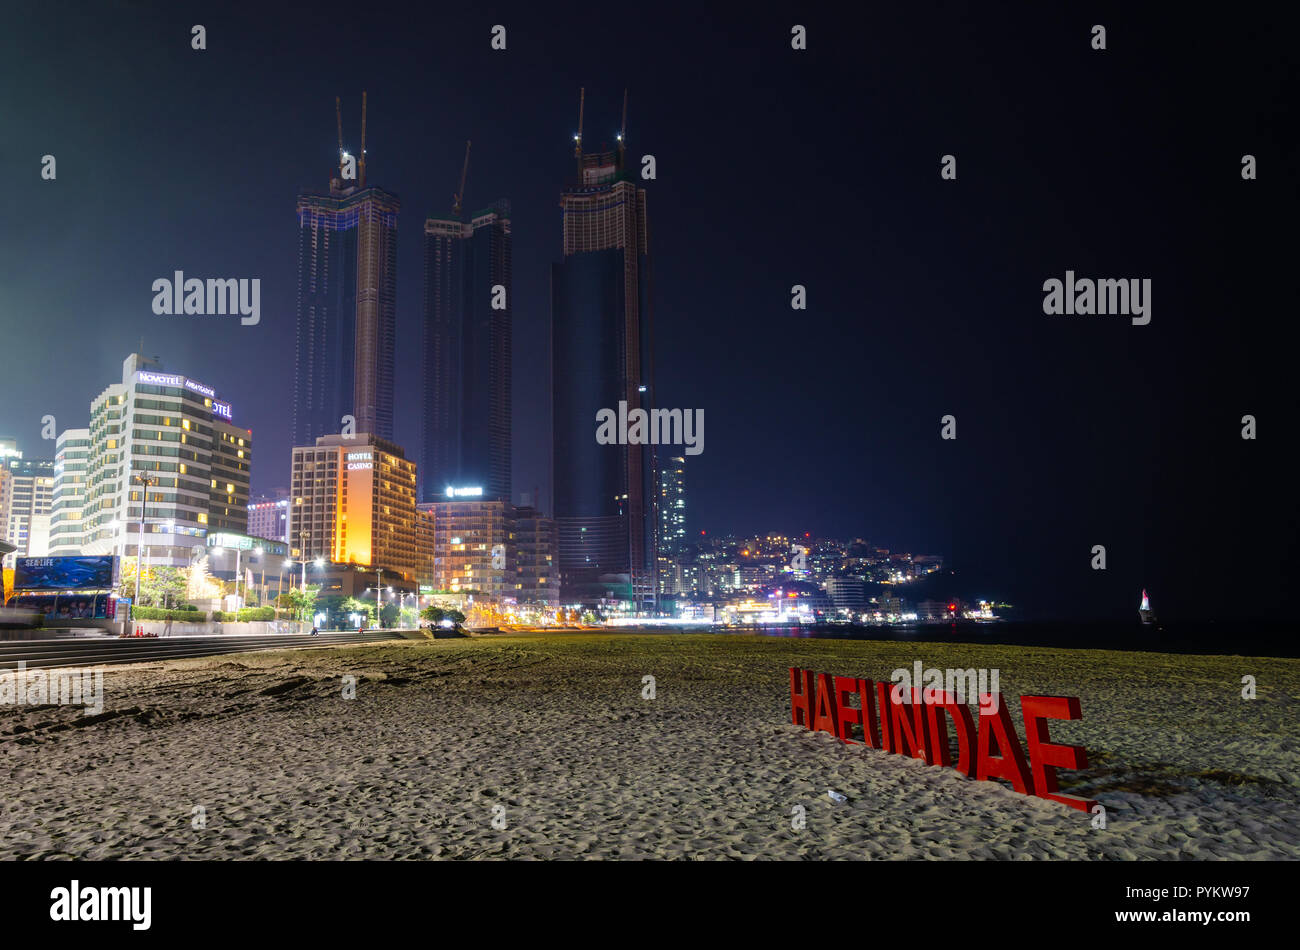 haeundai-beach-at-night-with-skyscrapers-of-the-city-lit-up-in-the-dark-haeundae-busan-south-korea-PYKW97.jpg